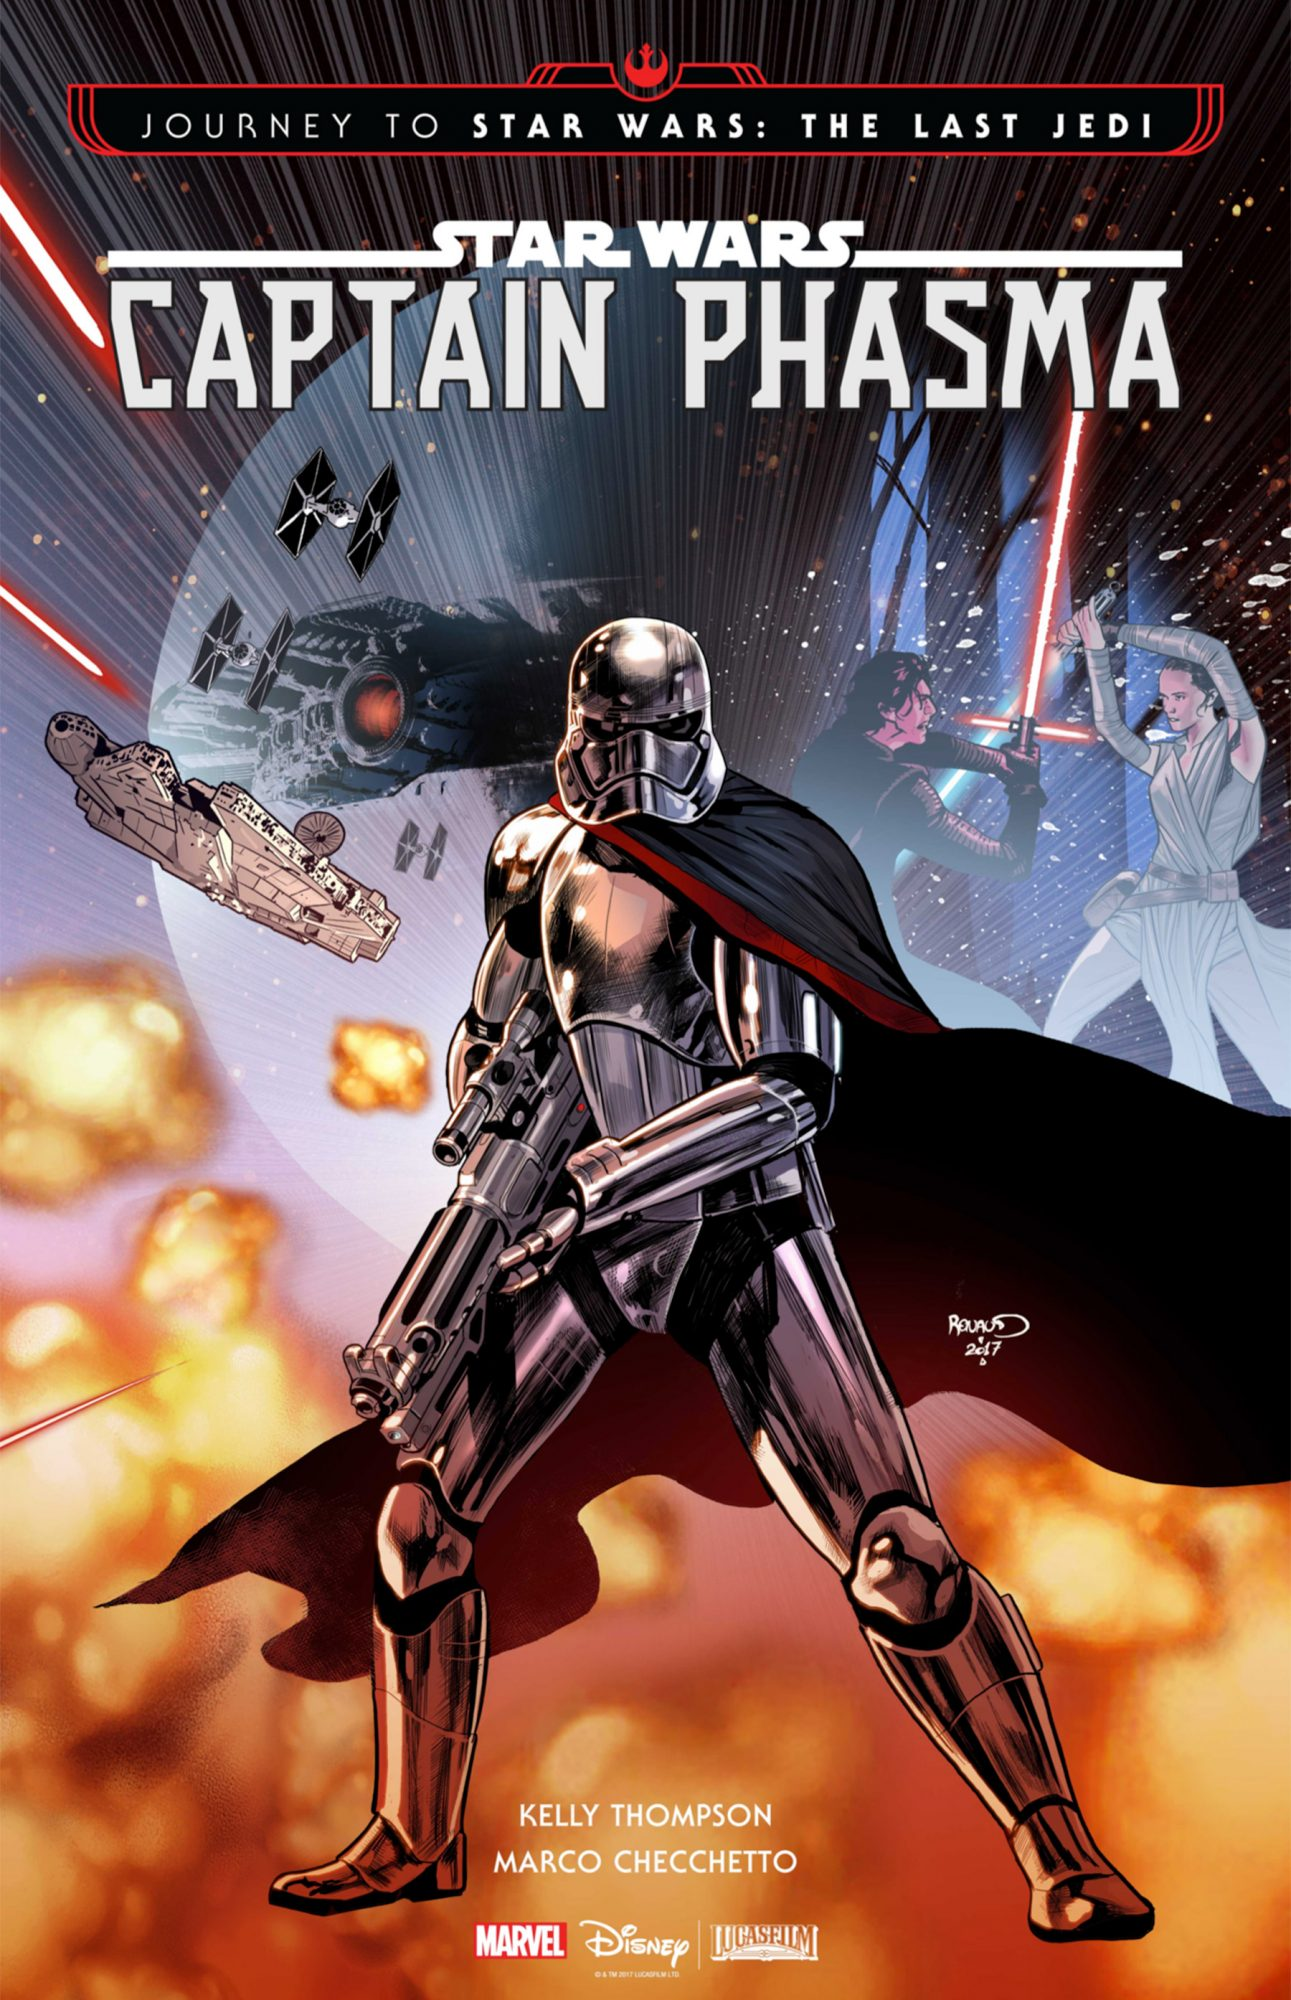 Captain Phasma, written by Kelly Thompson and illustrated by Marco Checchetto